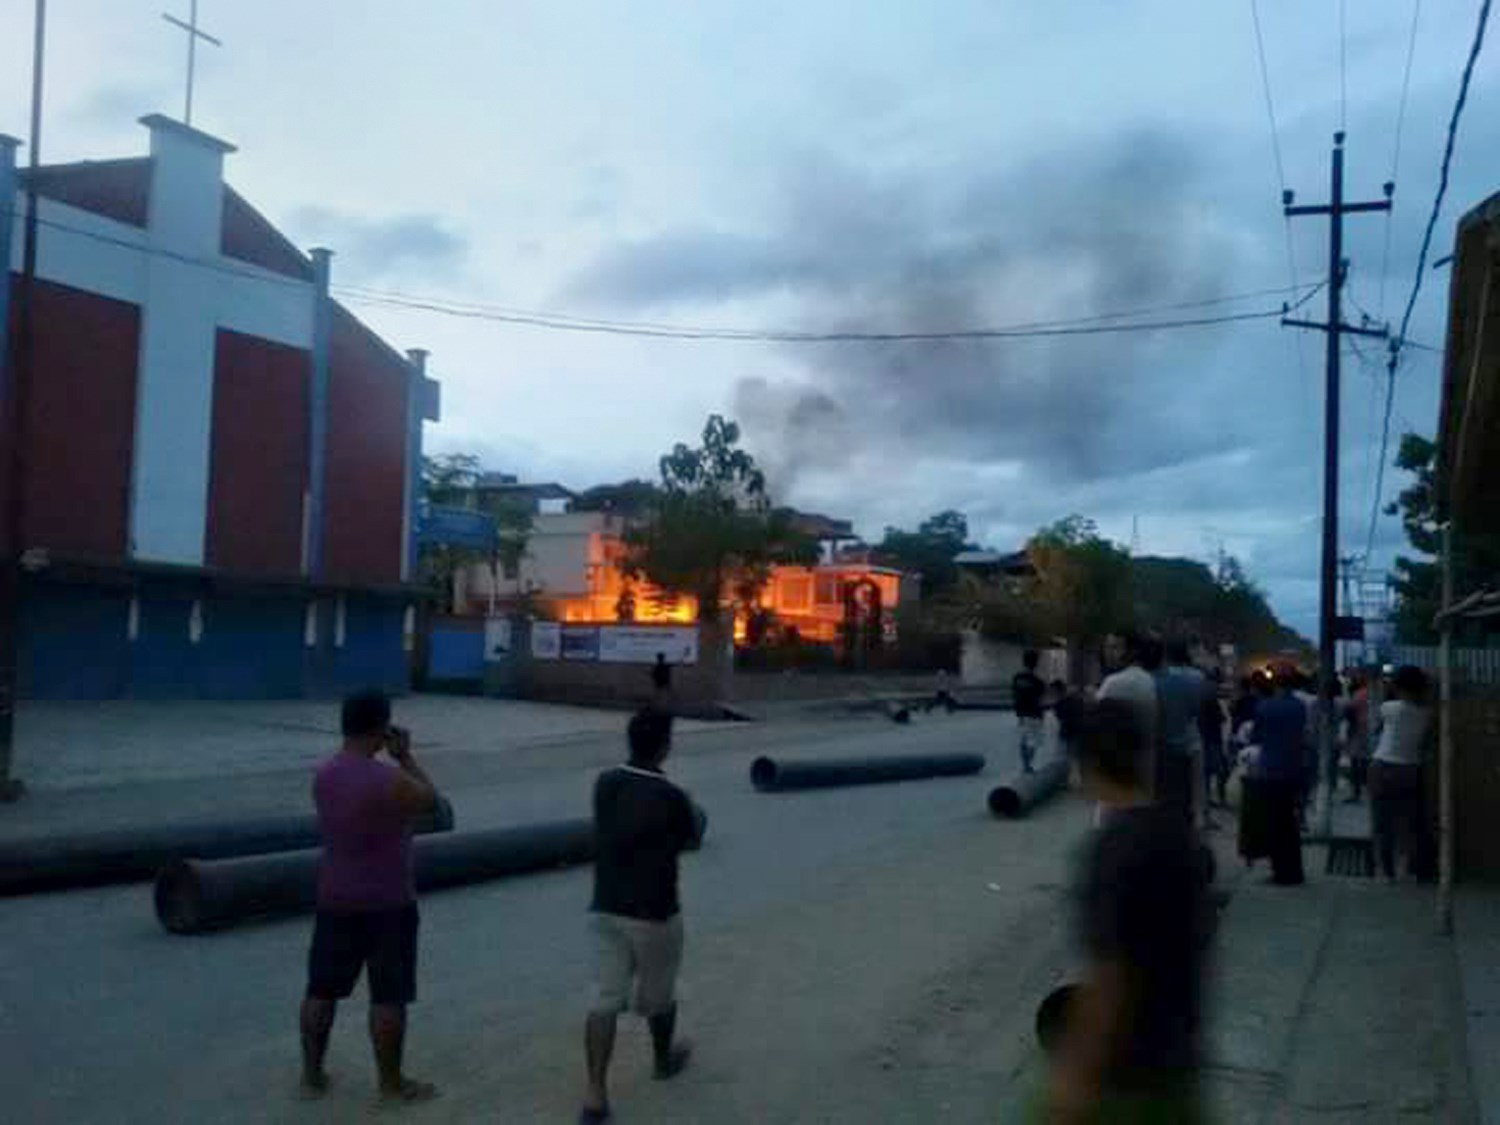 People watch a blaze at the residence of Manipur State Health Minister Phungzaphang Tonsimg, which was torched during a protest against controversial tribal-rights laws at Churachandpur, India, on Aug. 31, 2015